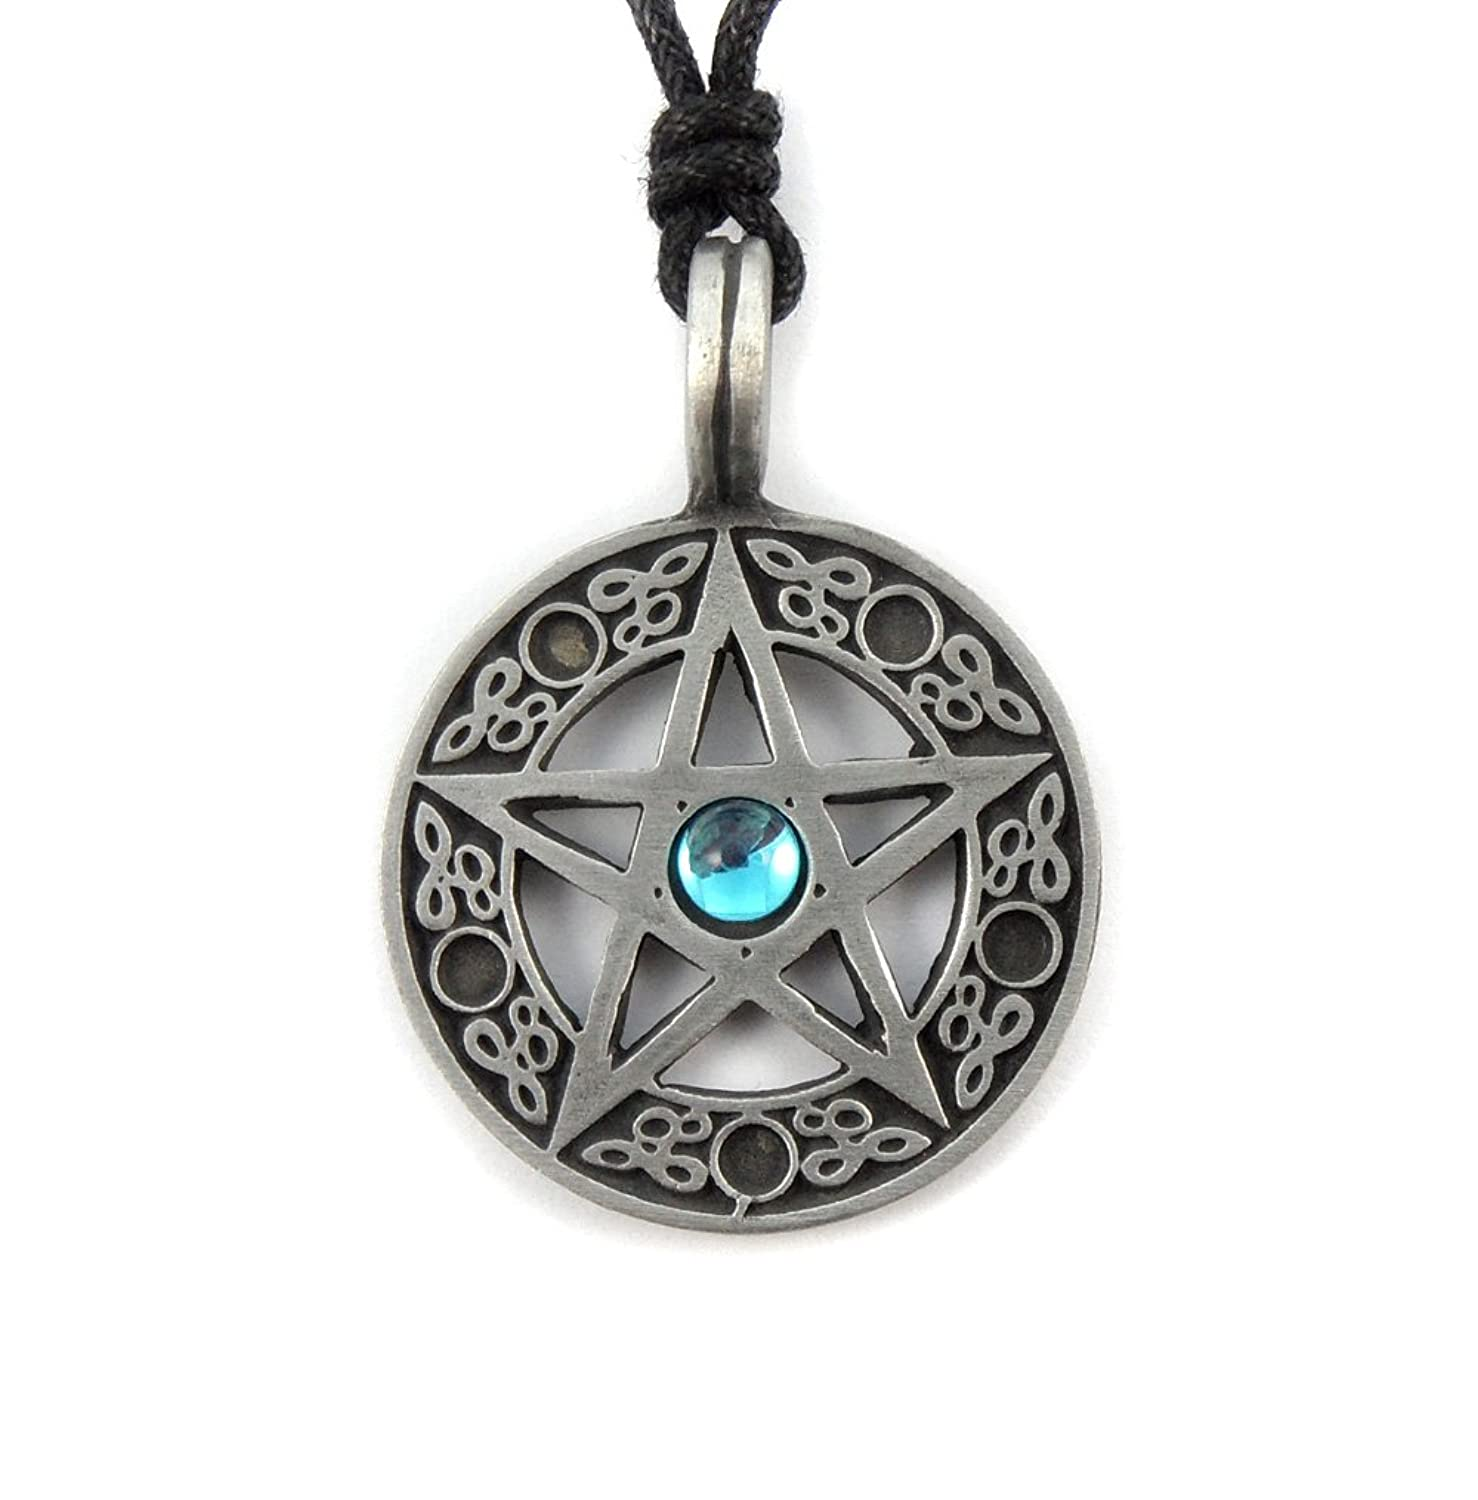 Pewter celtic pentagram pentacle pagan wiccan pendant necklace pewter celtic pentagram pentacle pagan wiccan pendant necklace amazon jewellery aloadofball Image collections